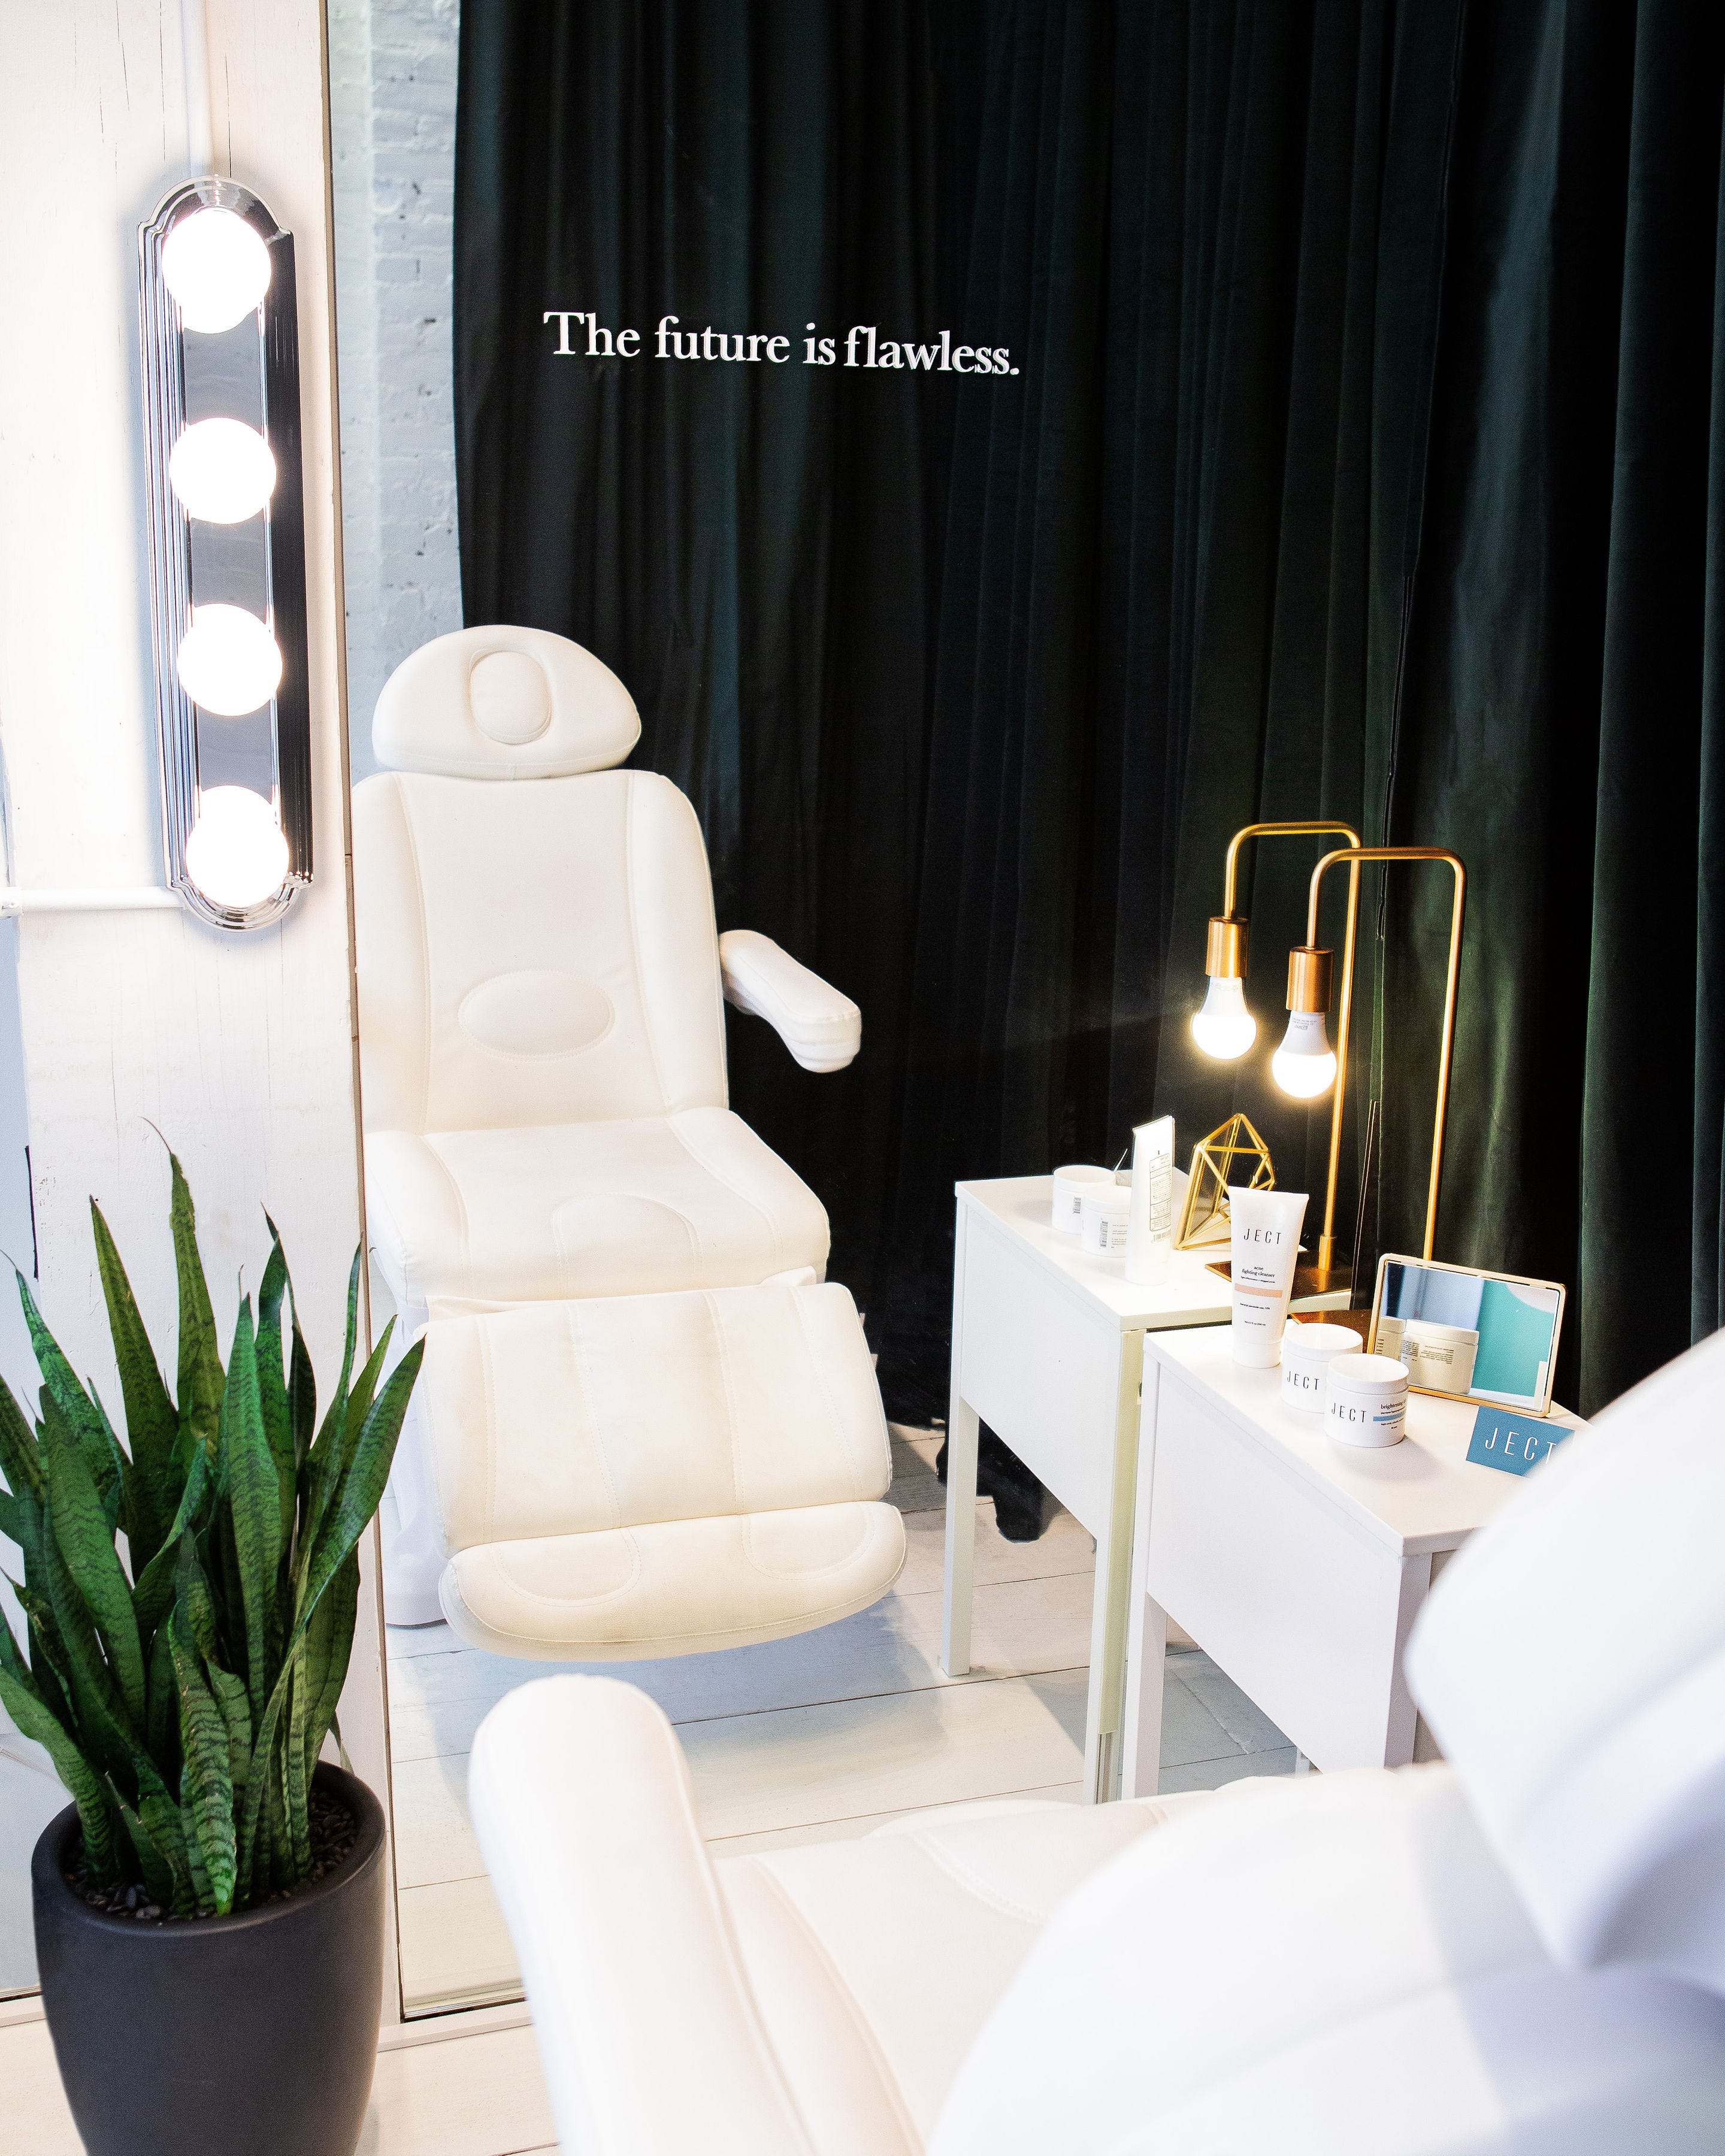 Best Facials & Spas In NYC 2019: Where To Get Pampered